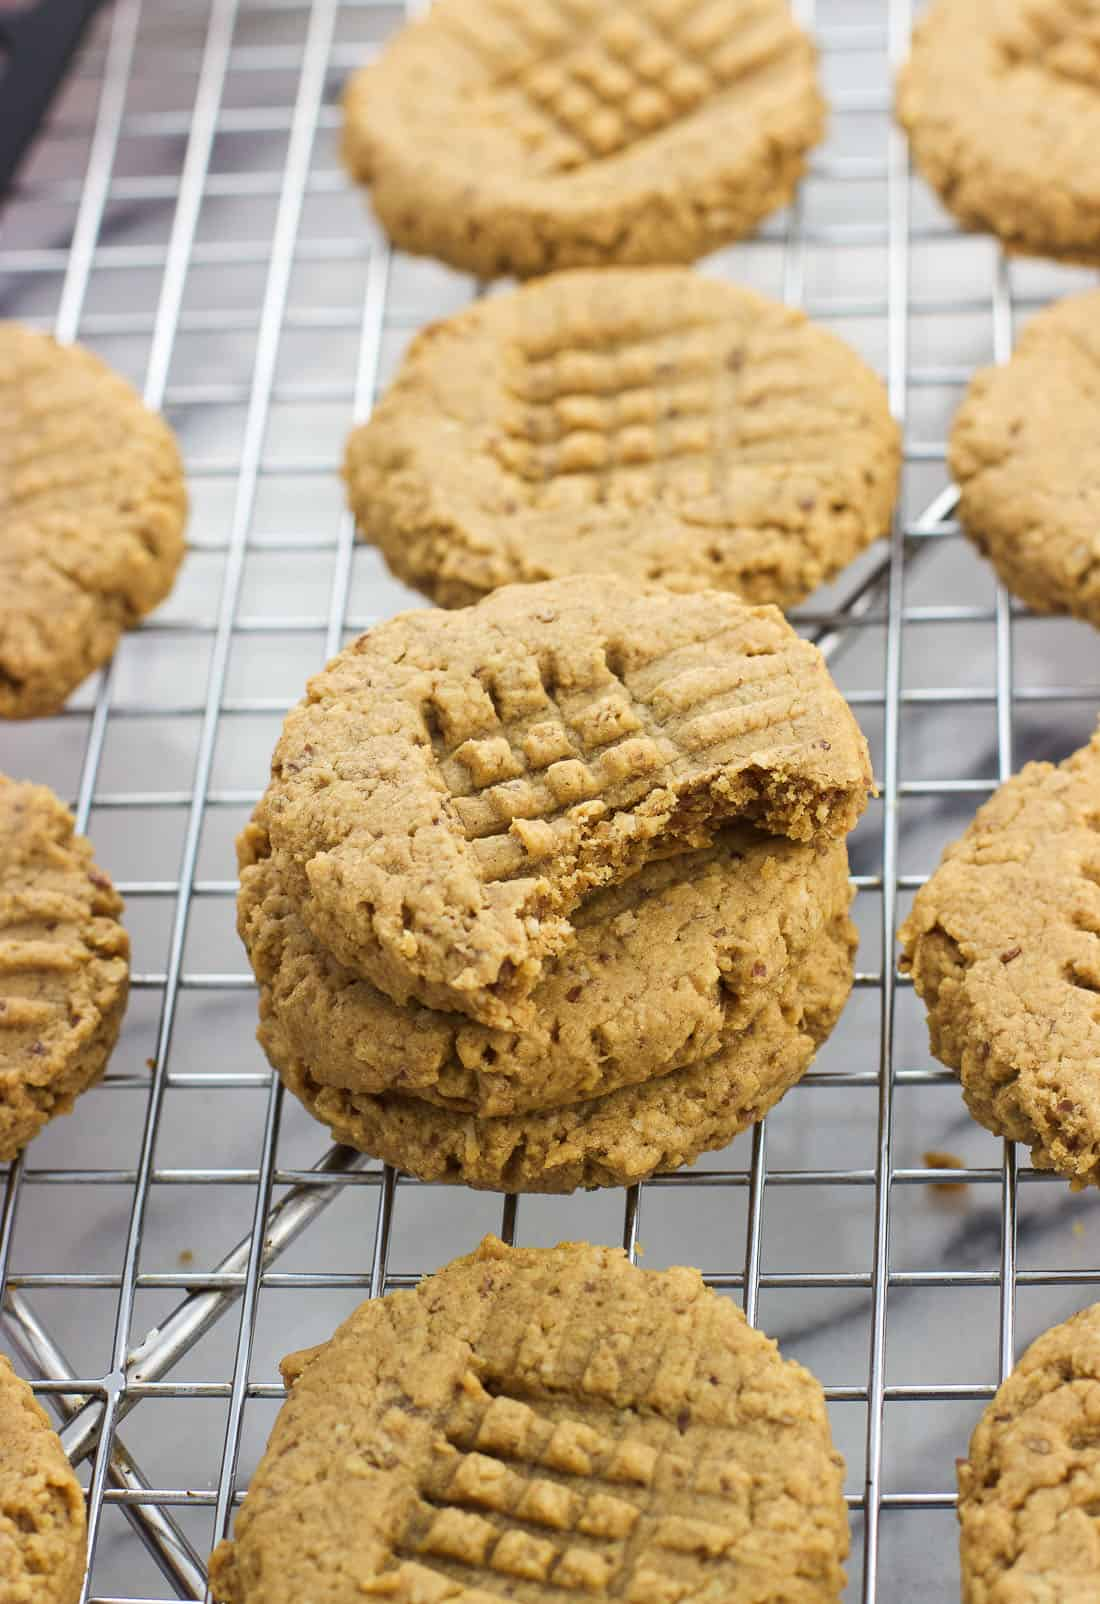 A stack of peanut butter cookies on a wire rack with a bite taken out of the top cookie.